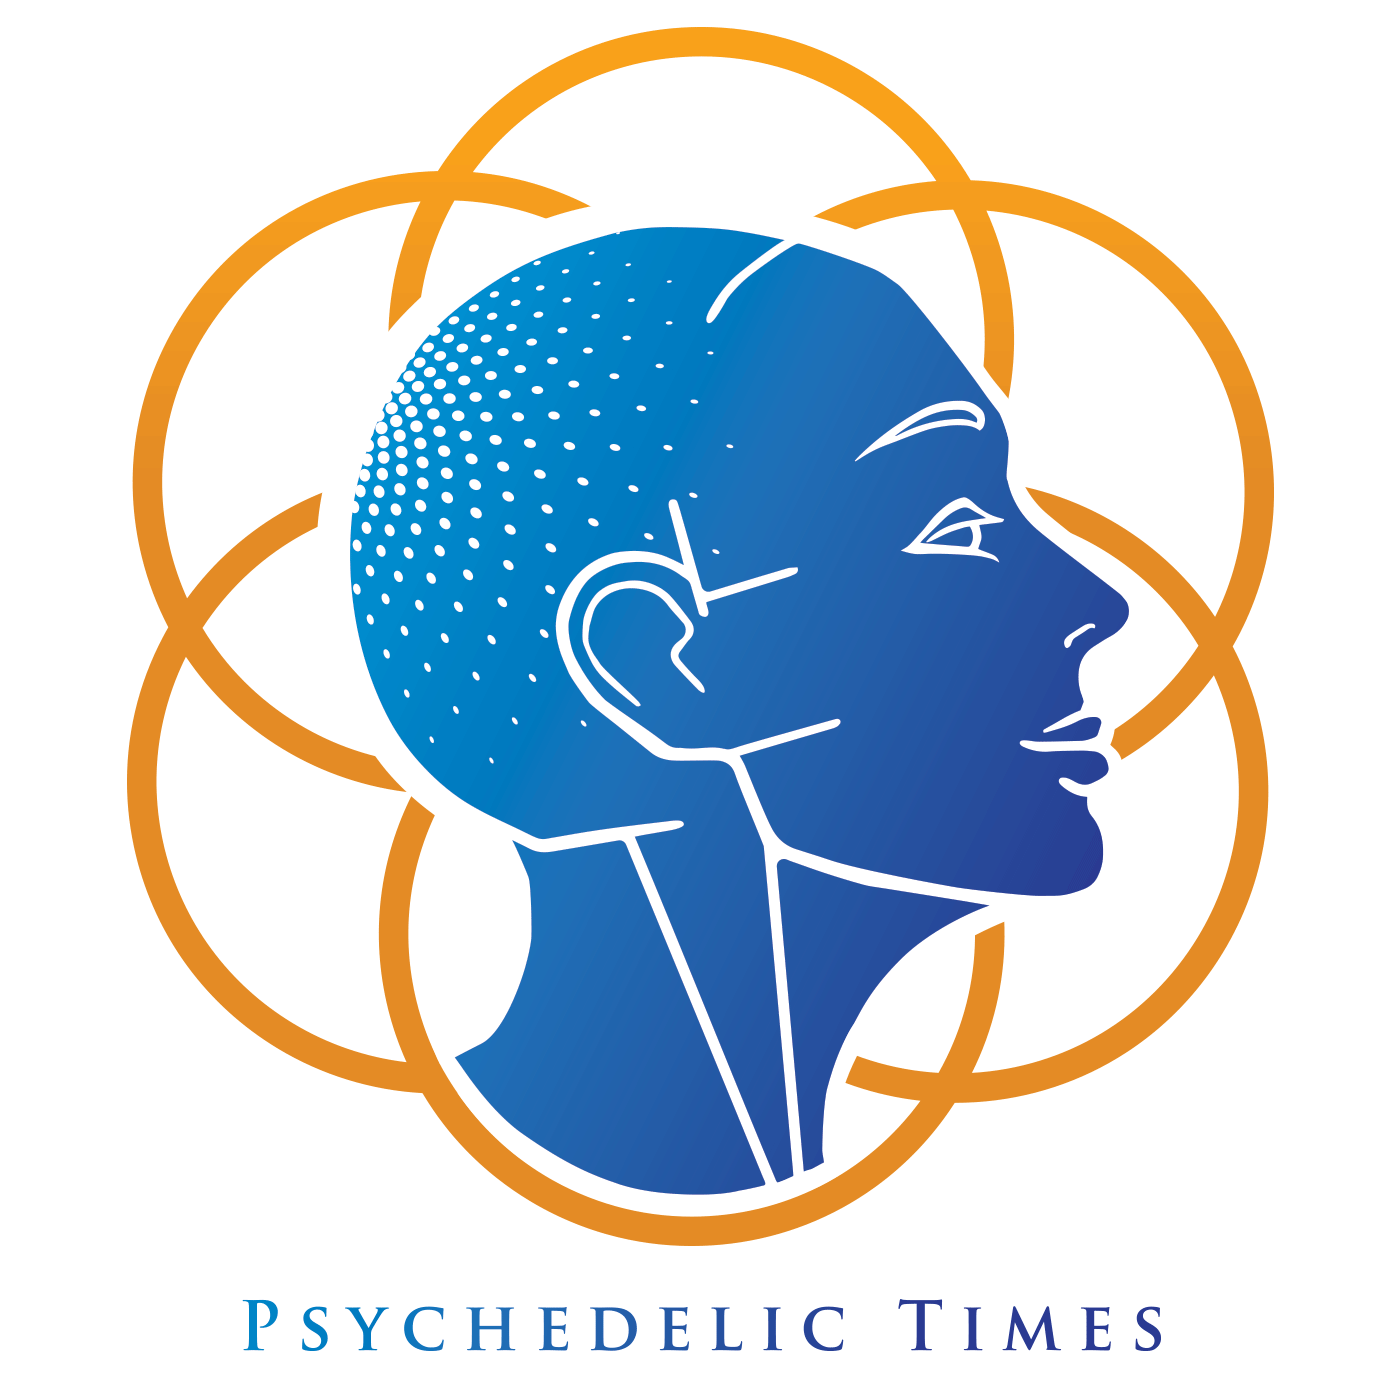 Psychedelic Times Podcast logo